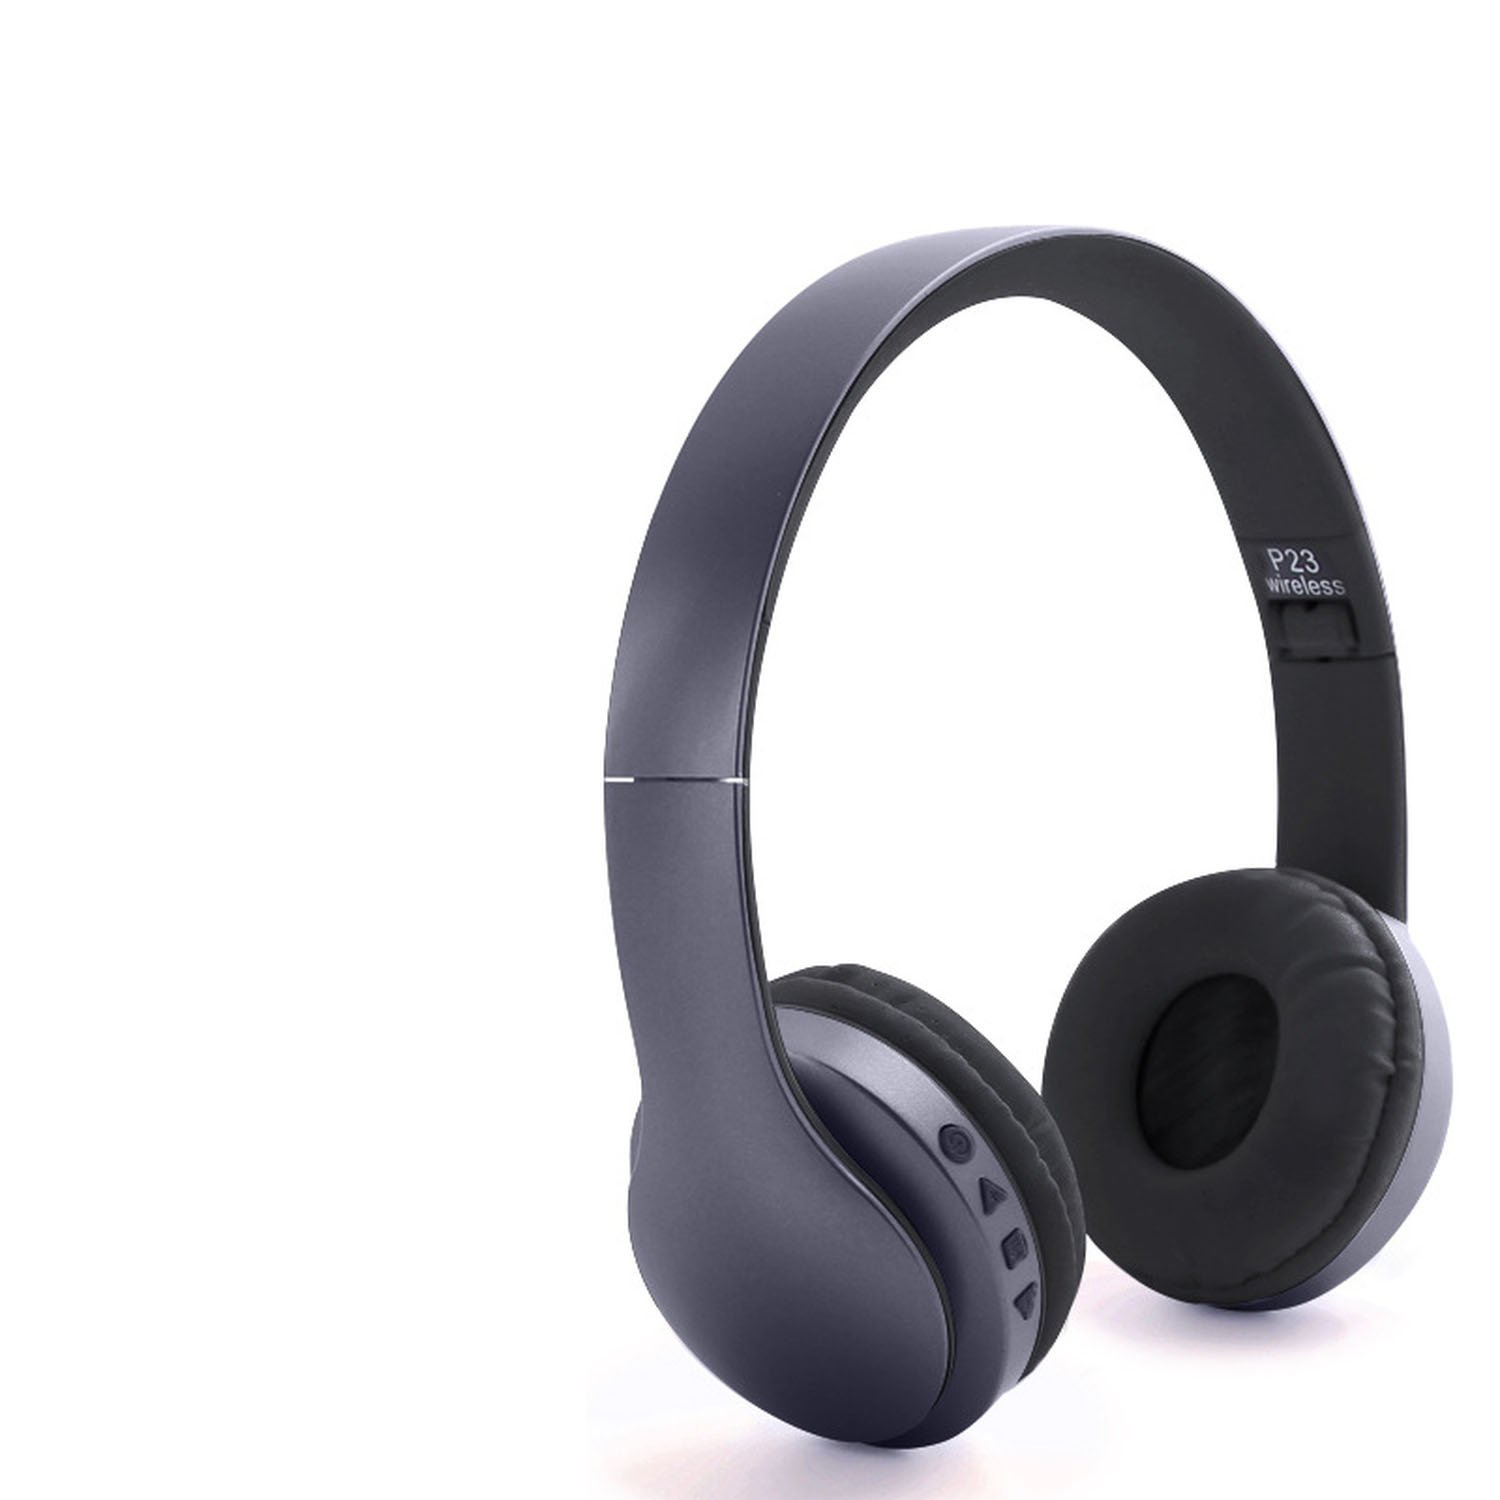 Amazon.com: Headset Bluetooth Headset Wireless Cardable Bluetooth Headset,Silver: Cell Phones & Accessories